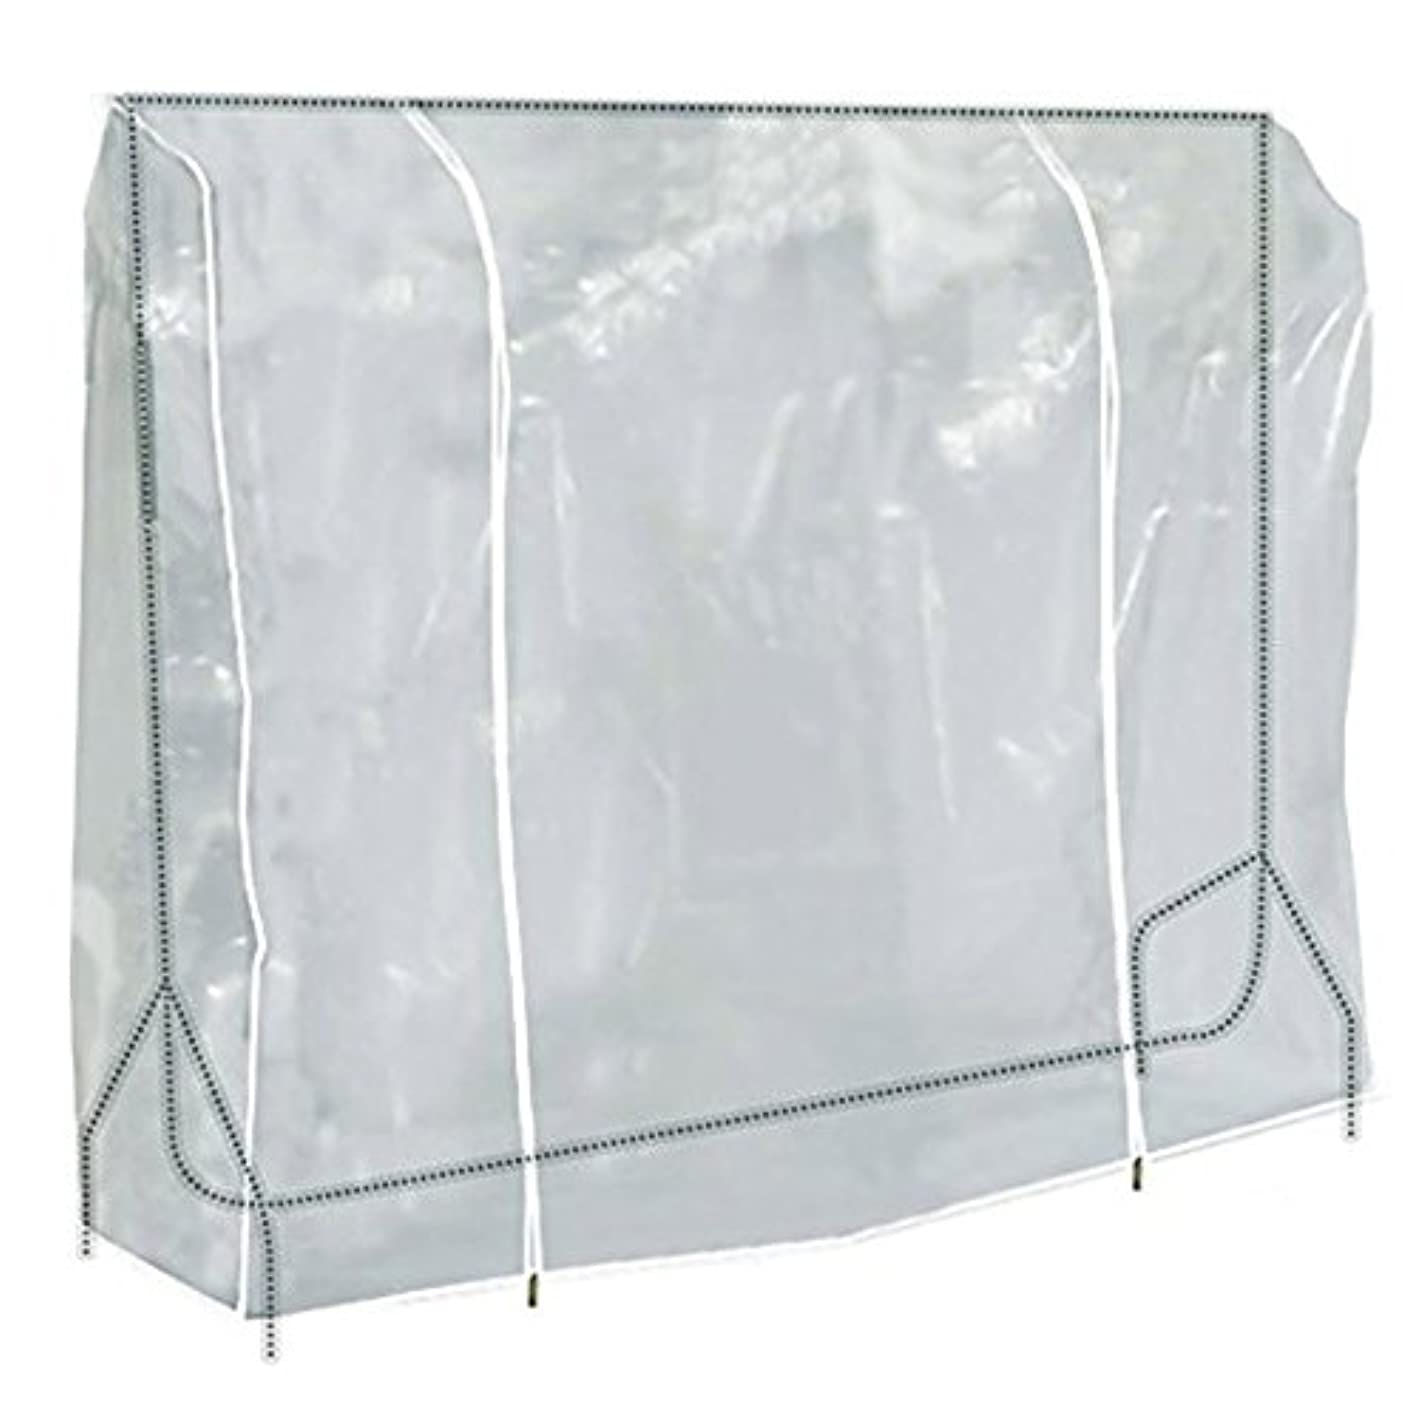 TzBBL Clothes Garment Rack Cover 5 Ft with Strong Zipper Protective Rail Cover 59